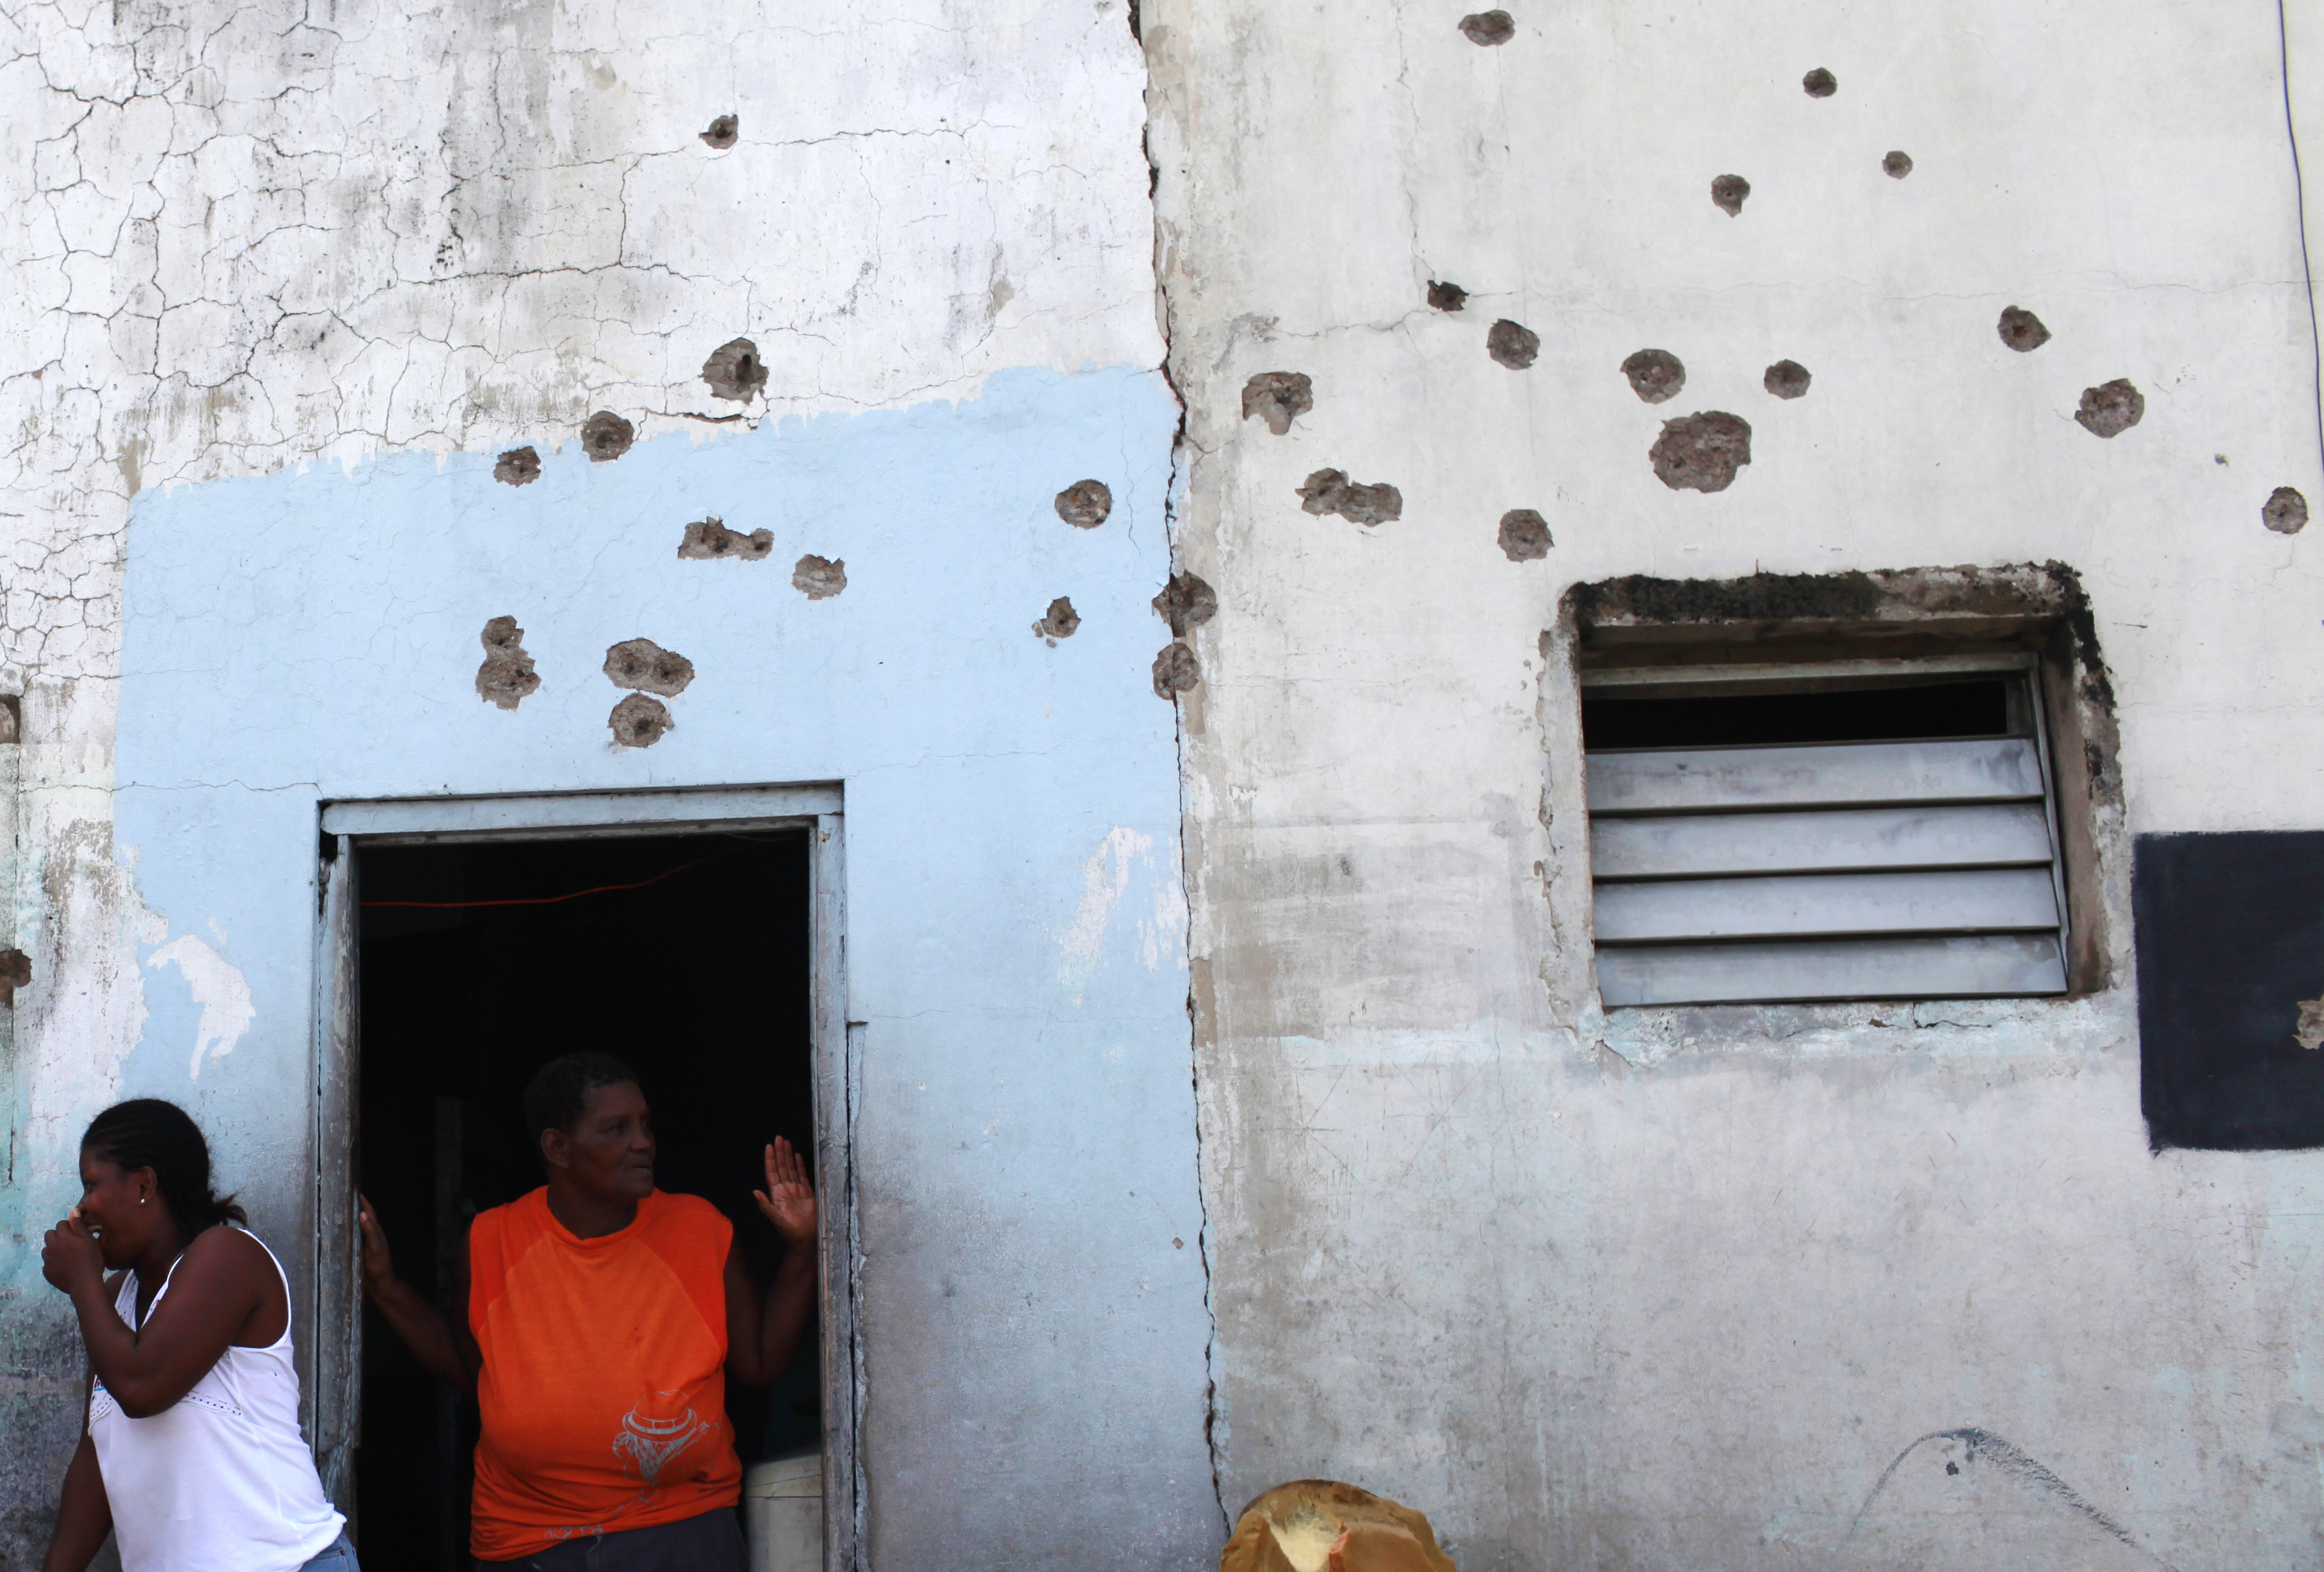 Residents gather outside their bullet-riddled home during a media tour organized by government authorities inside the Tivoli Gardens neighborhood in K...